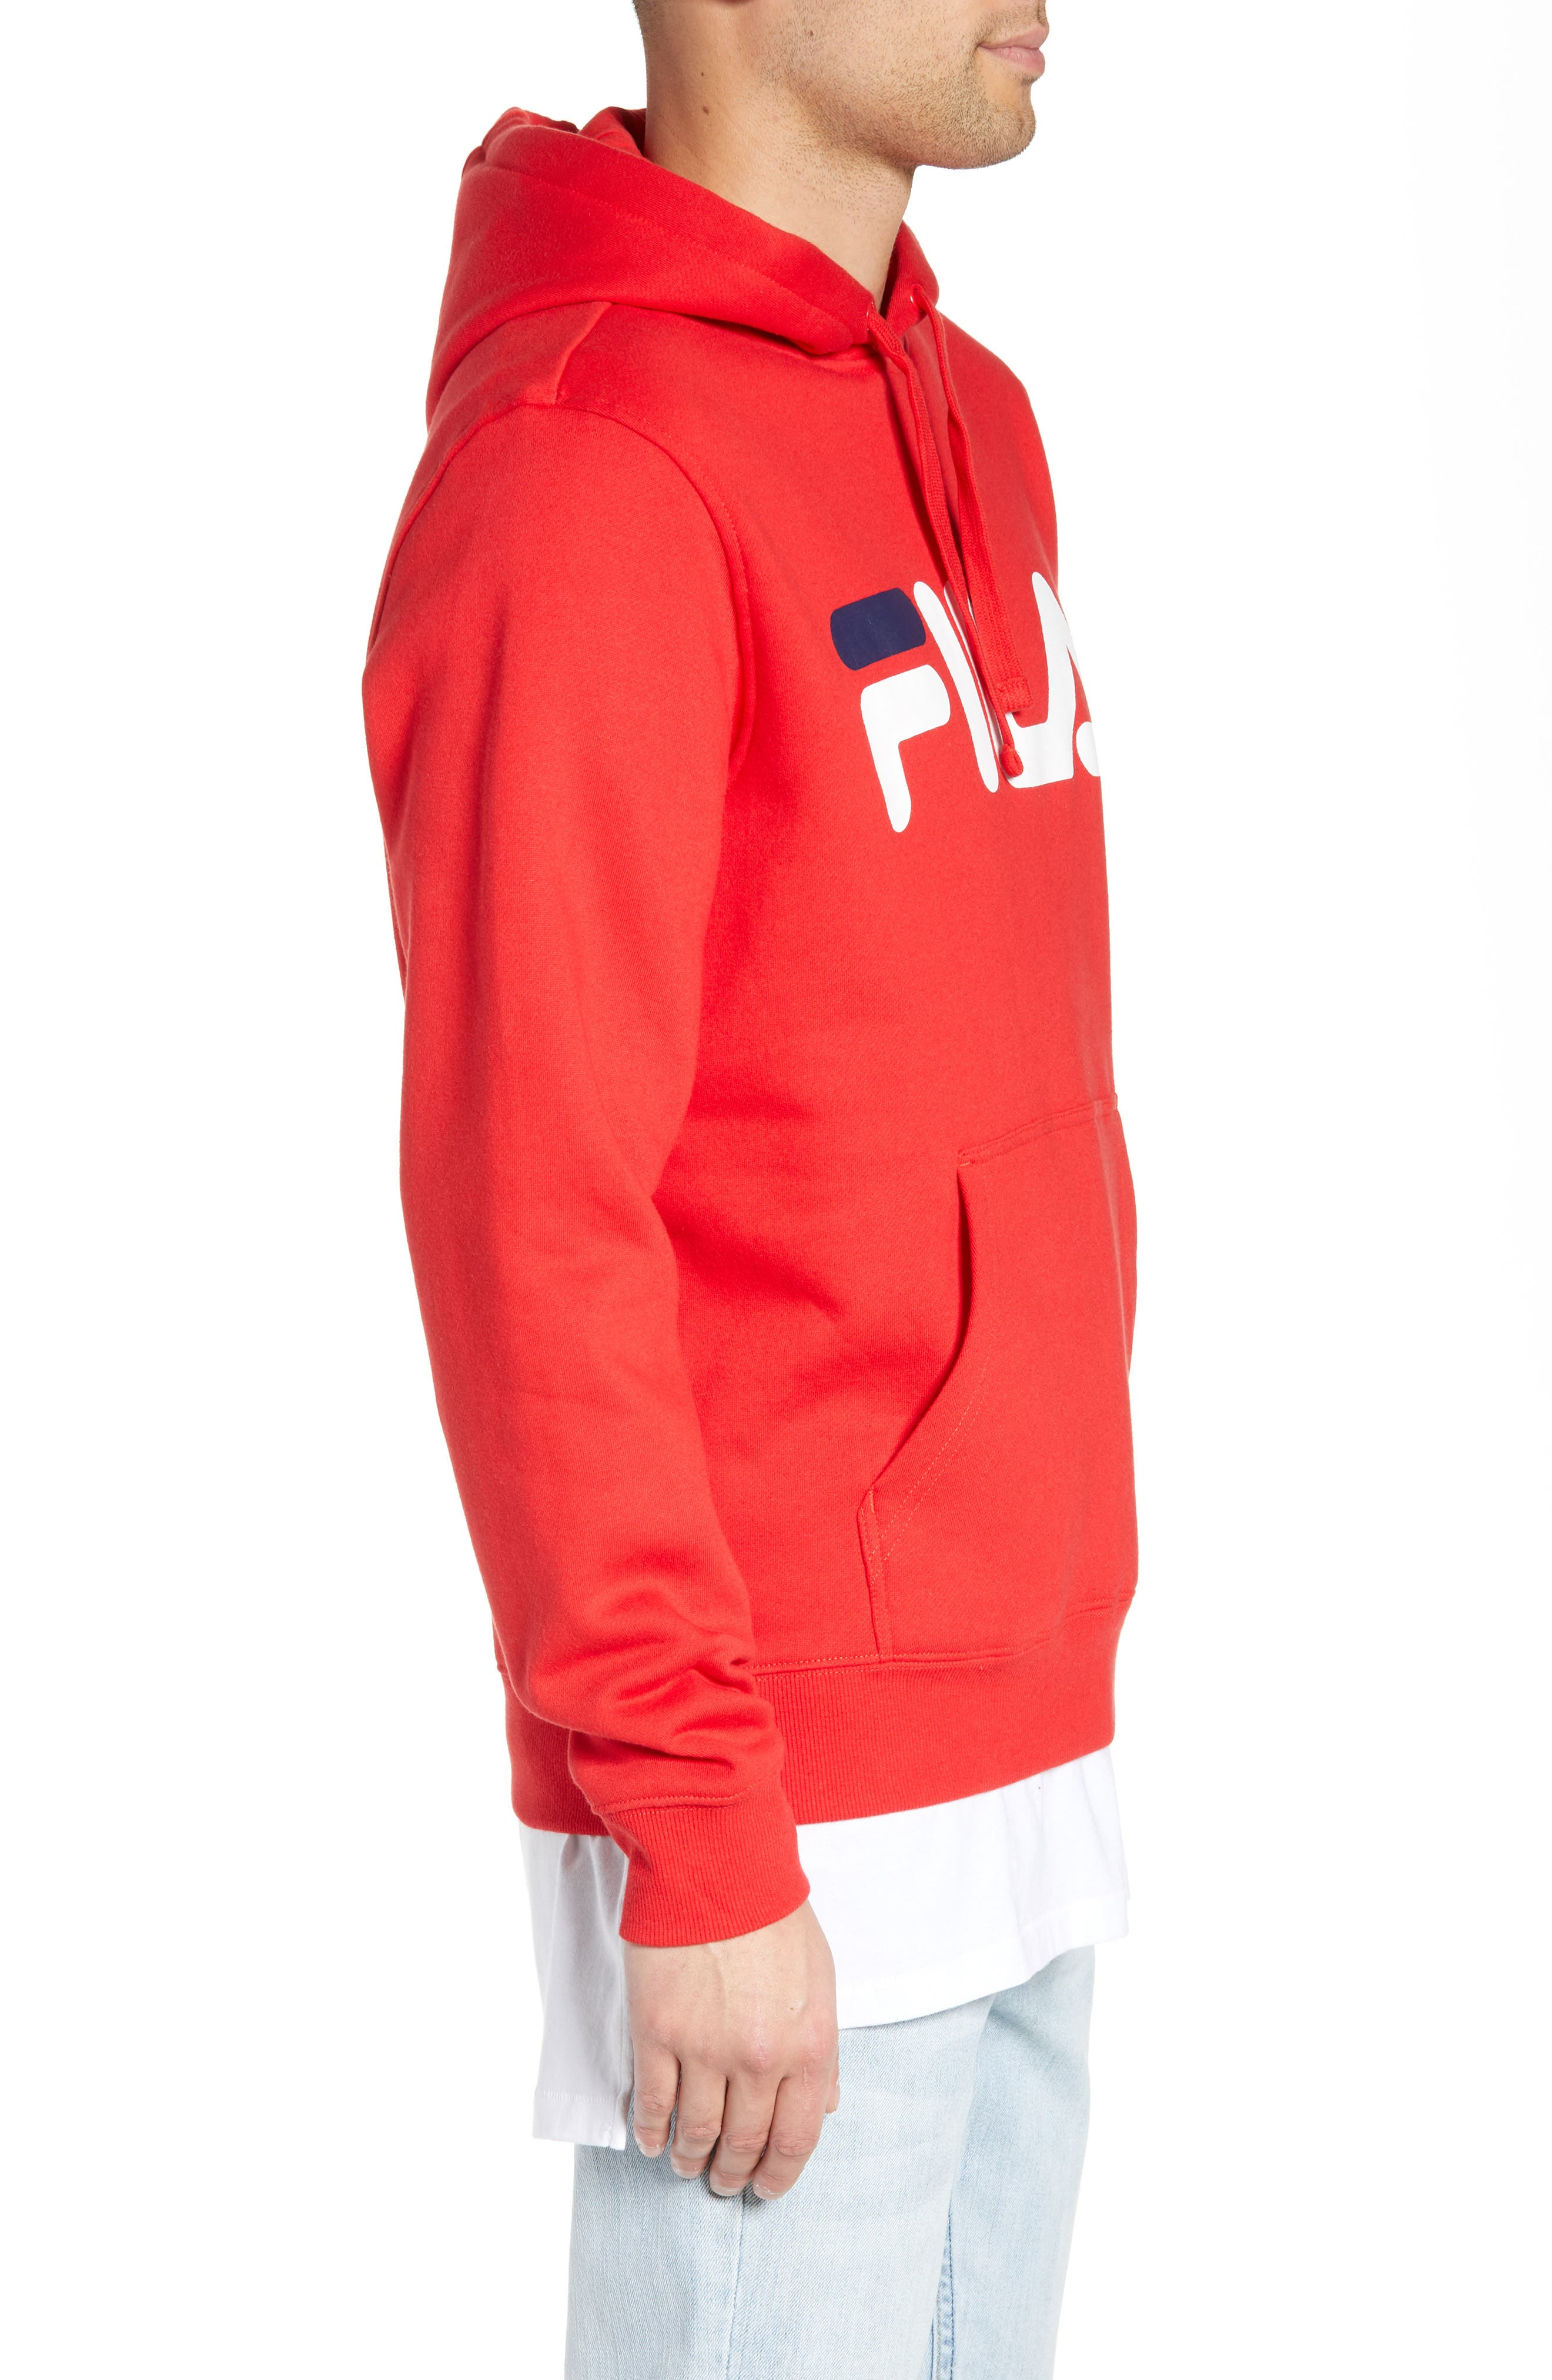 FILA, Logo Graphic Hooded Sweatshirt, Alternate thumbnail 3, color, CHINESE RED/ WHITE/ NAVY